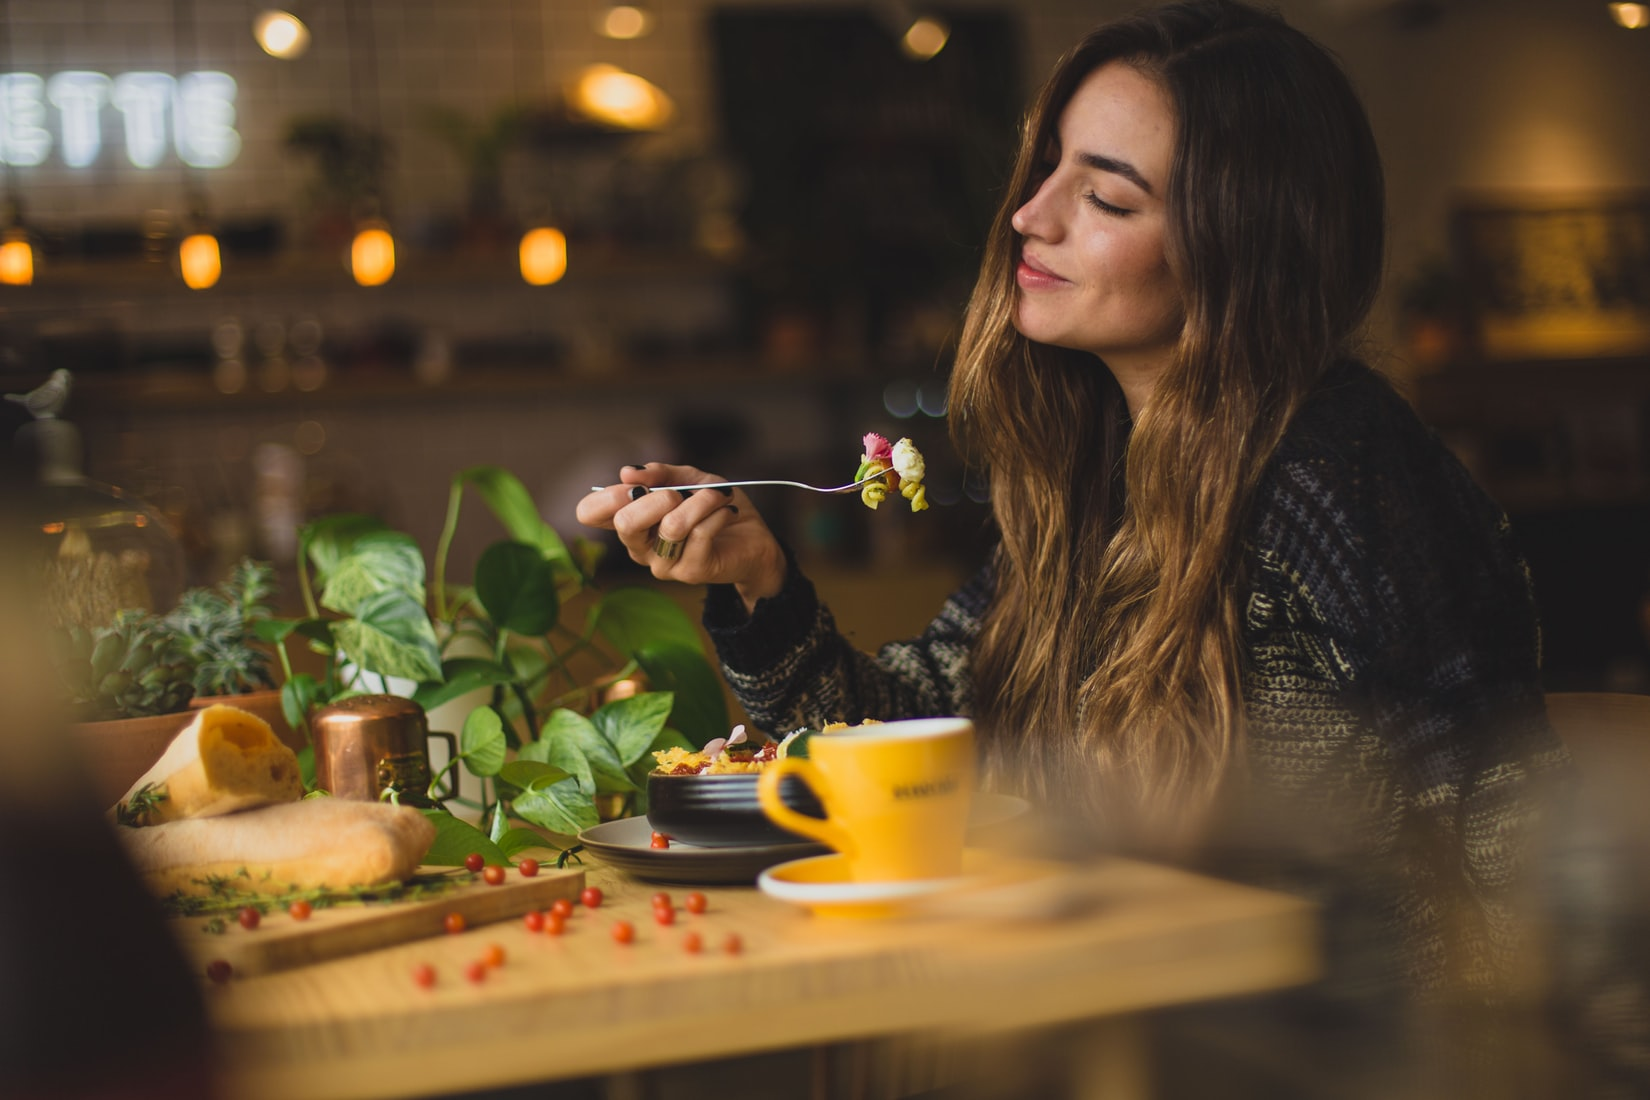 Young brunette woman smiling while eating pasta at wooden table